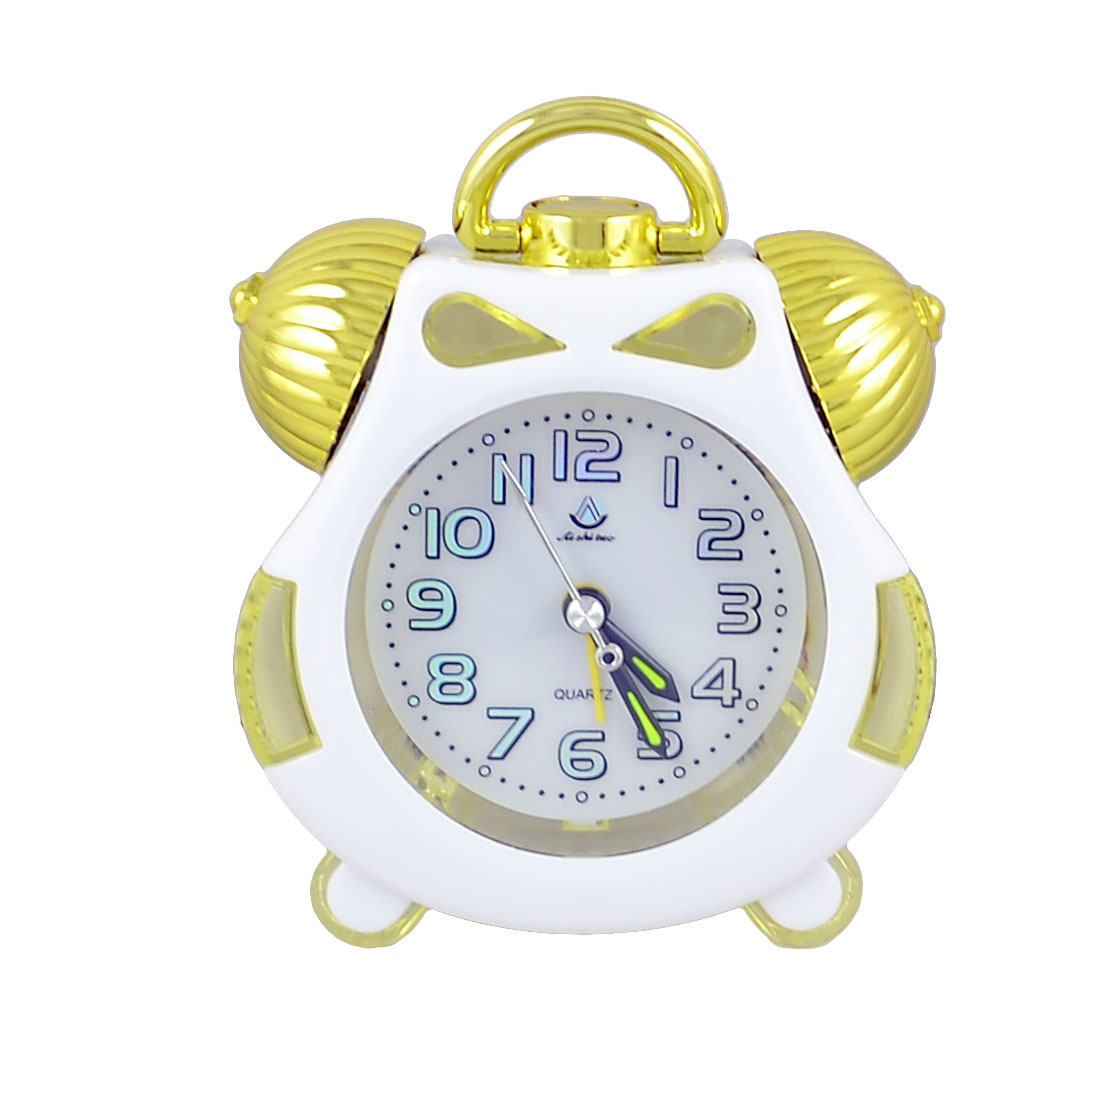 Gold Tone White Plastic Battery Powered Arabic Numberals Marking Dial Desk Alarm Clock